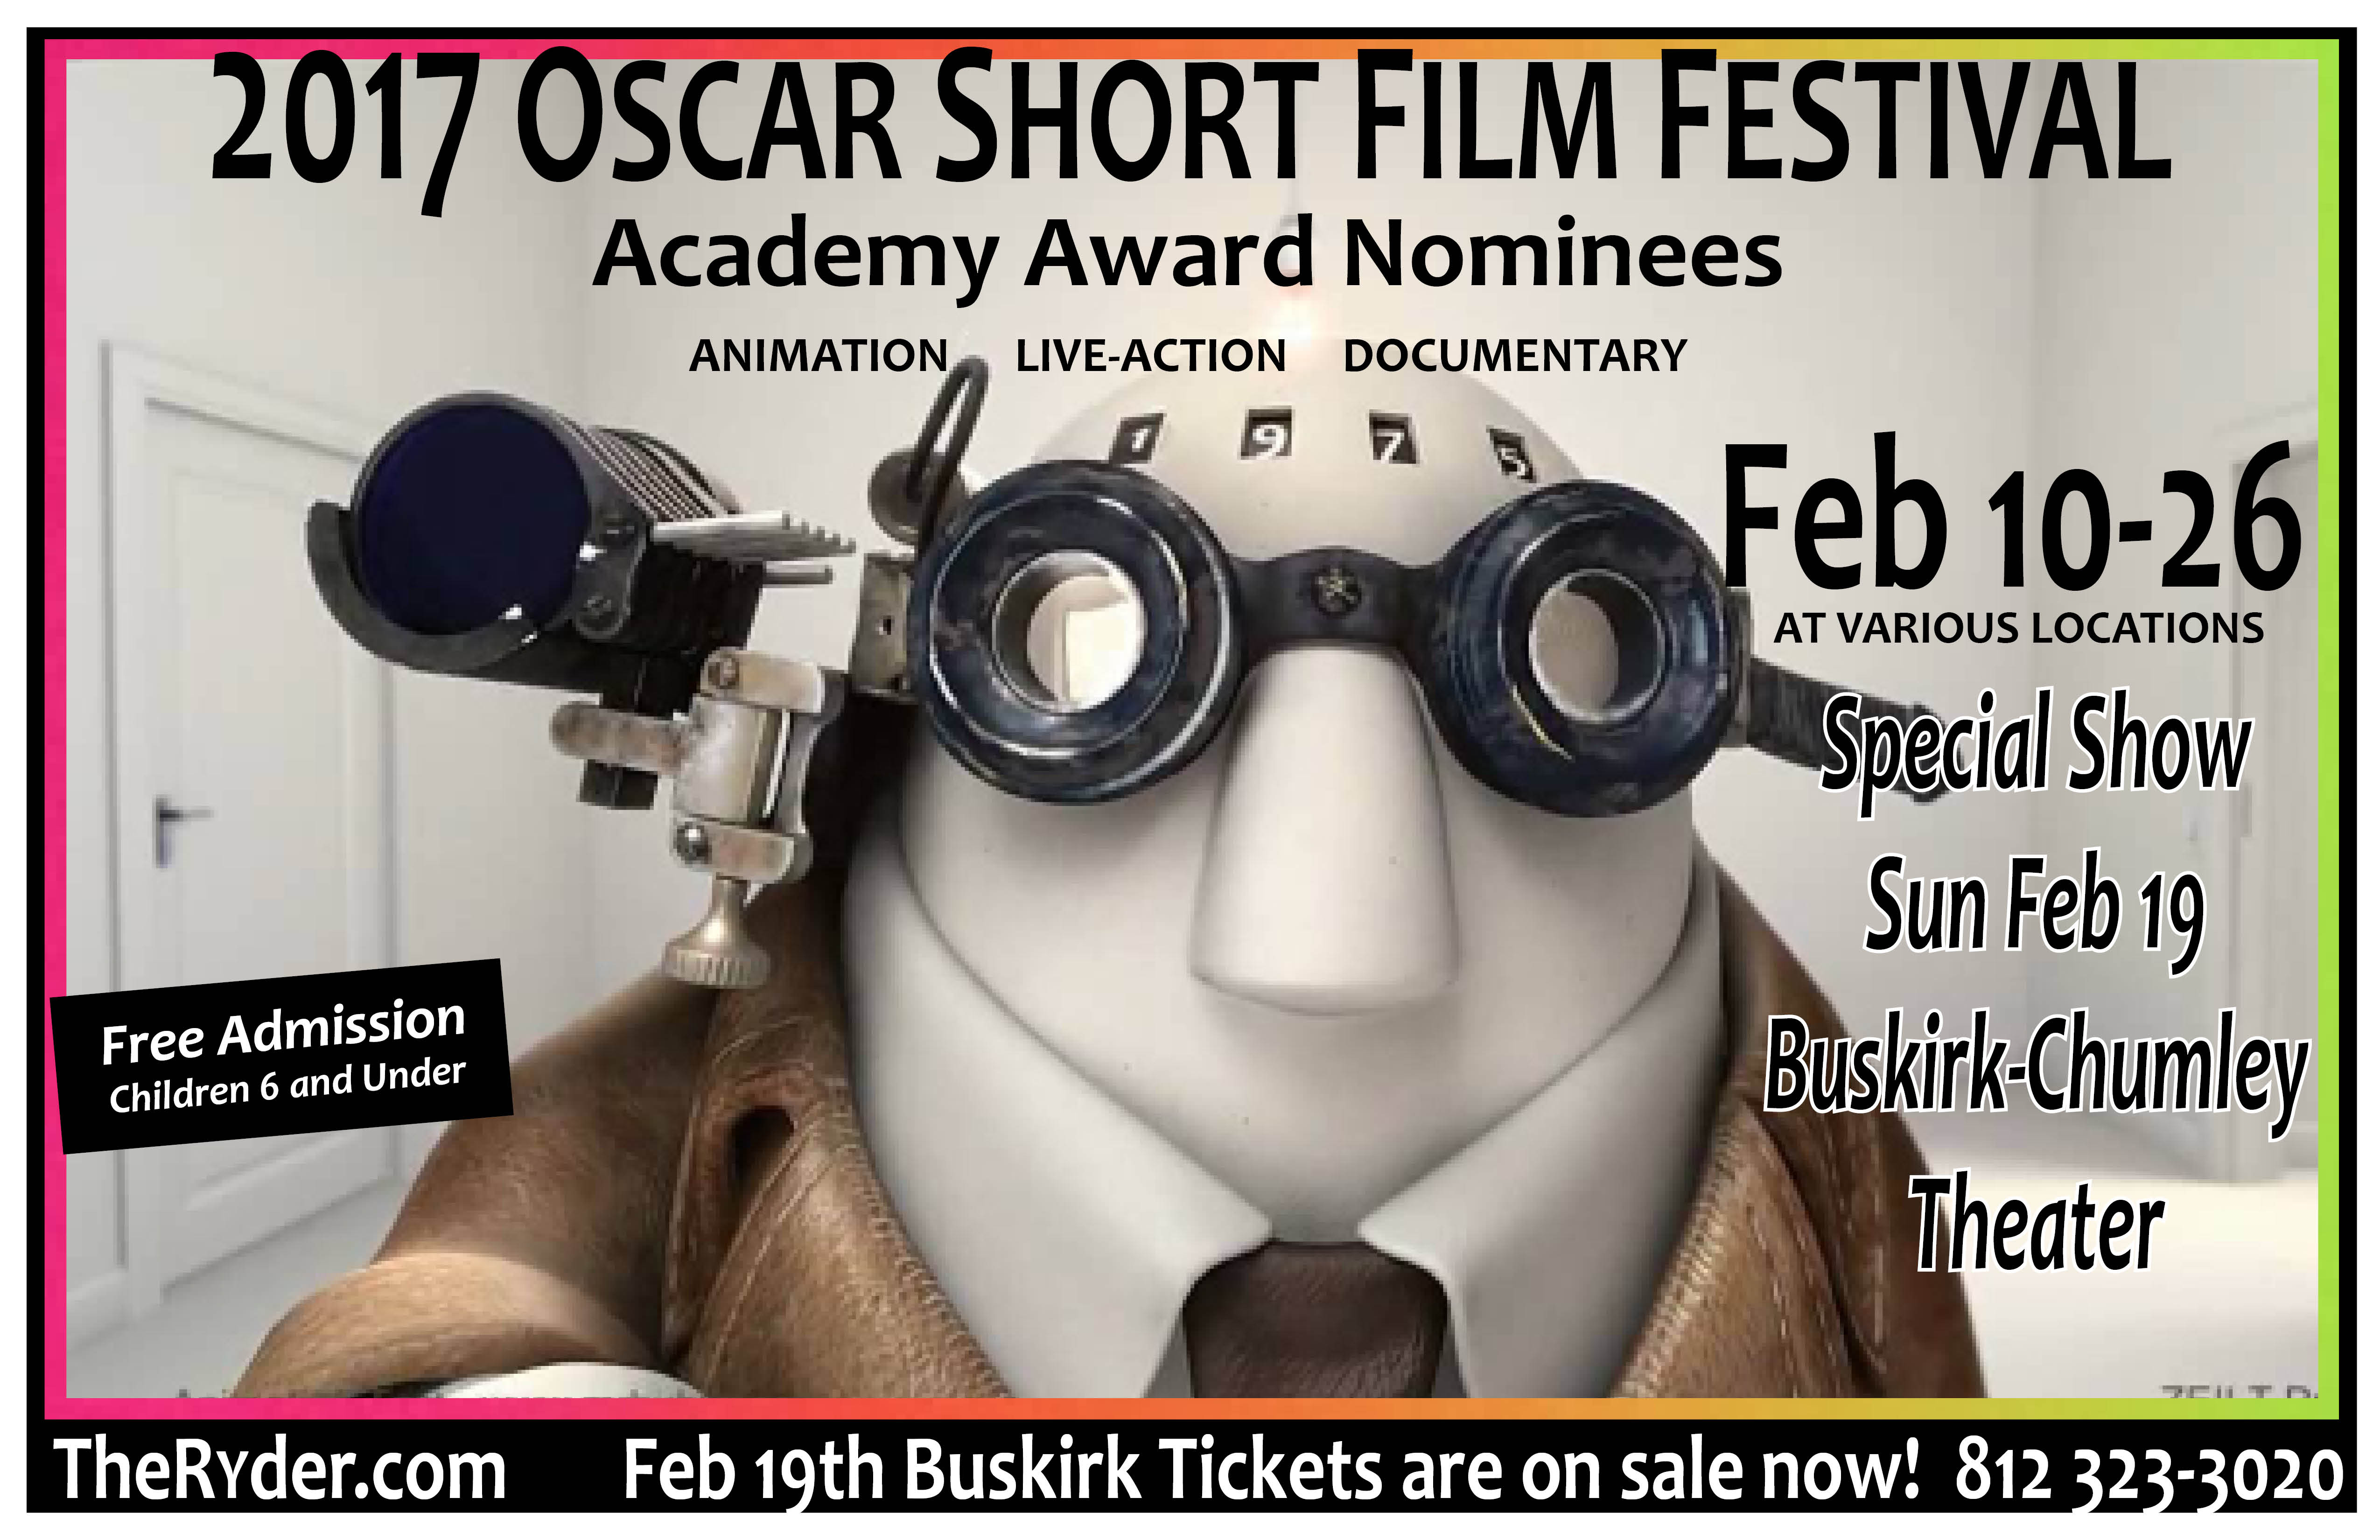 2017 Oscar Shorts poster 11X17 with DOCS